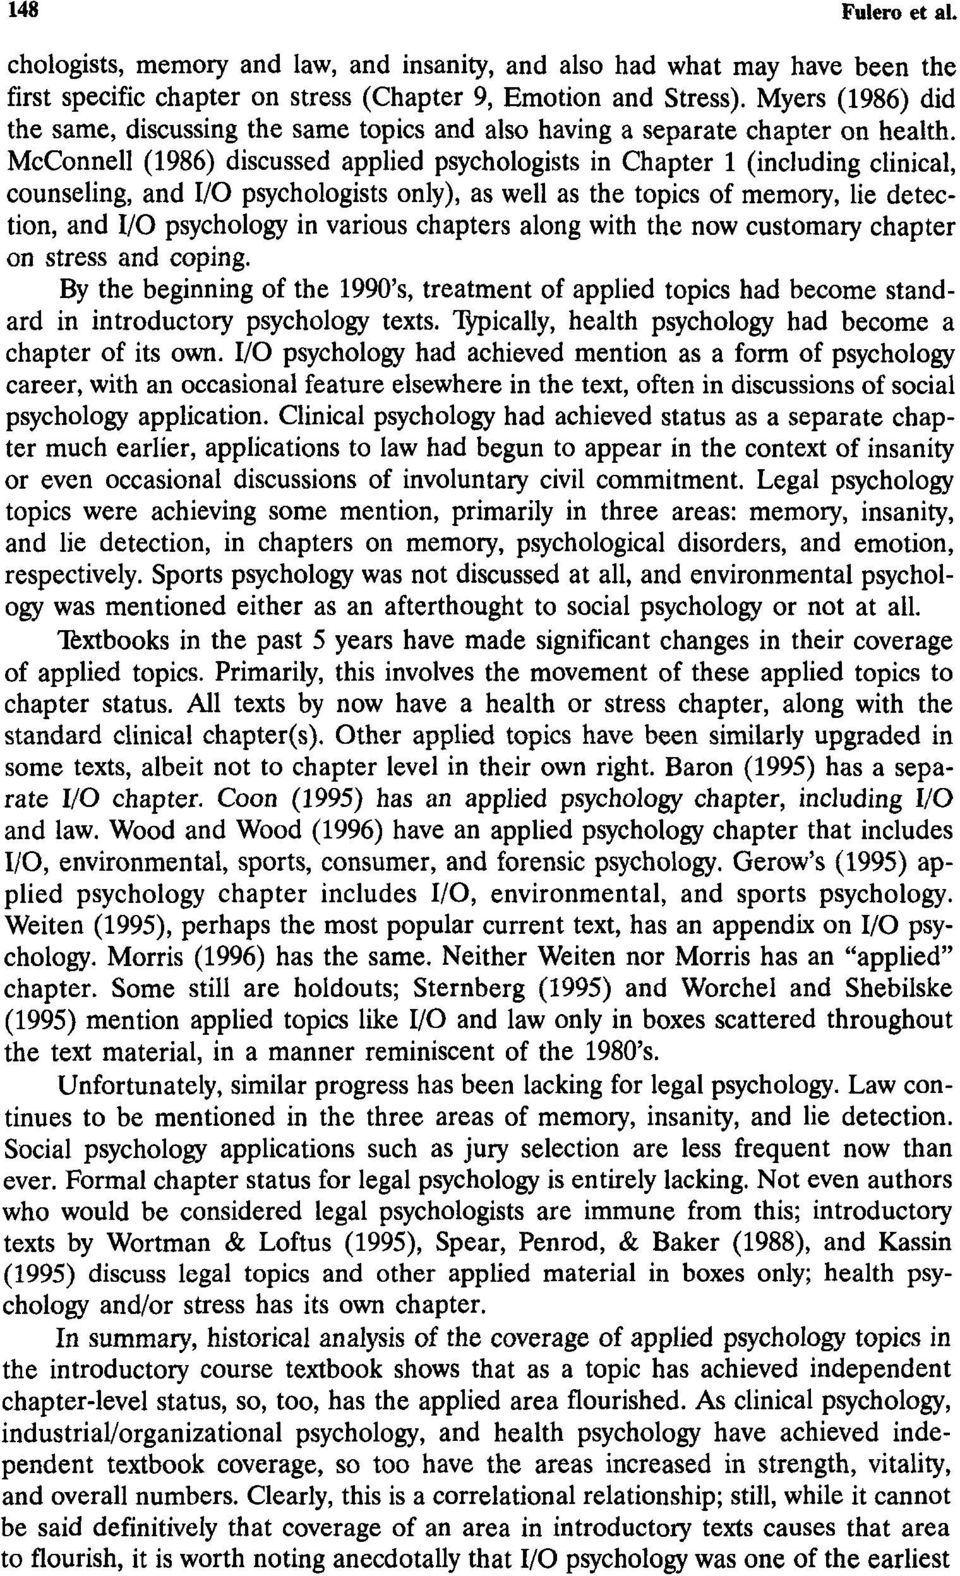 McConnell (1986) discussed applied psychologists in Chapter 1 (including clinical, counseling, and I/O psychologists only), as well as the topics of memory, lie detection, and I/O psychology in